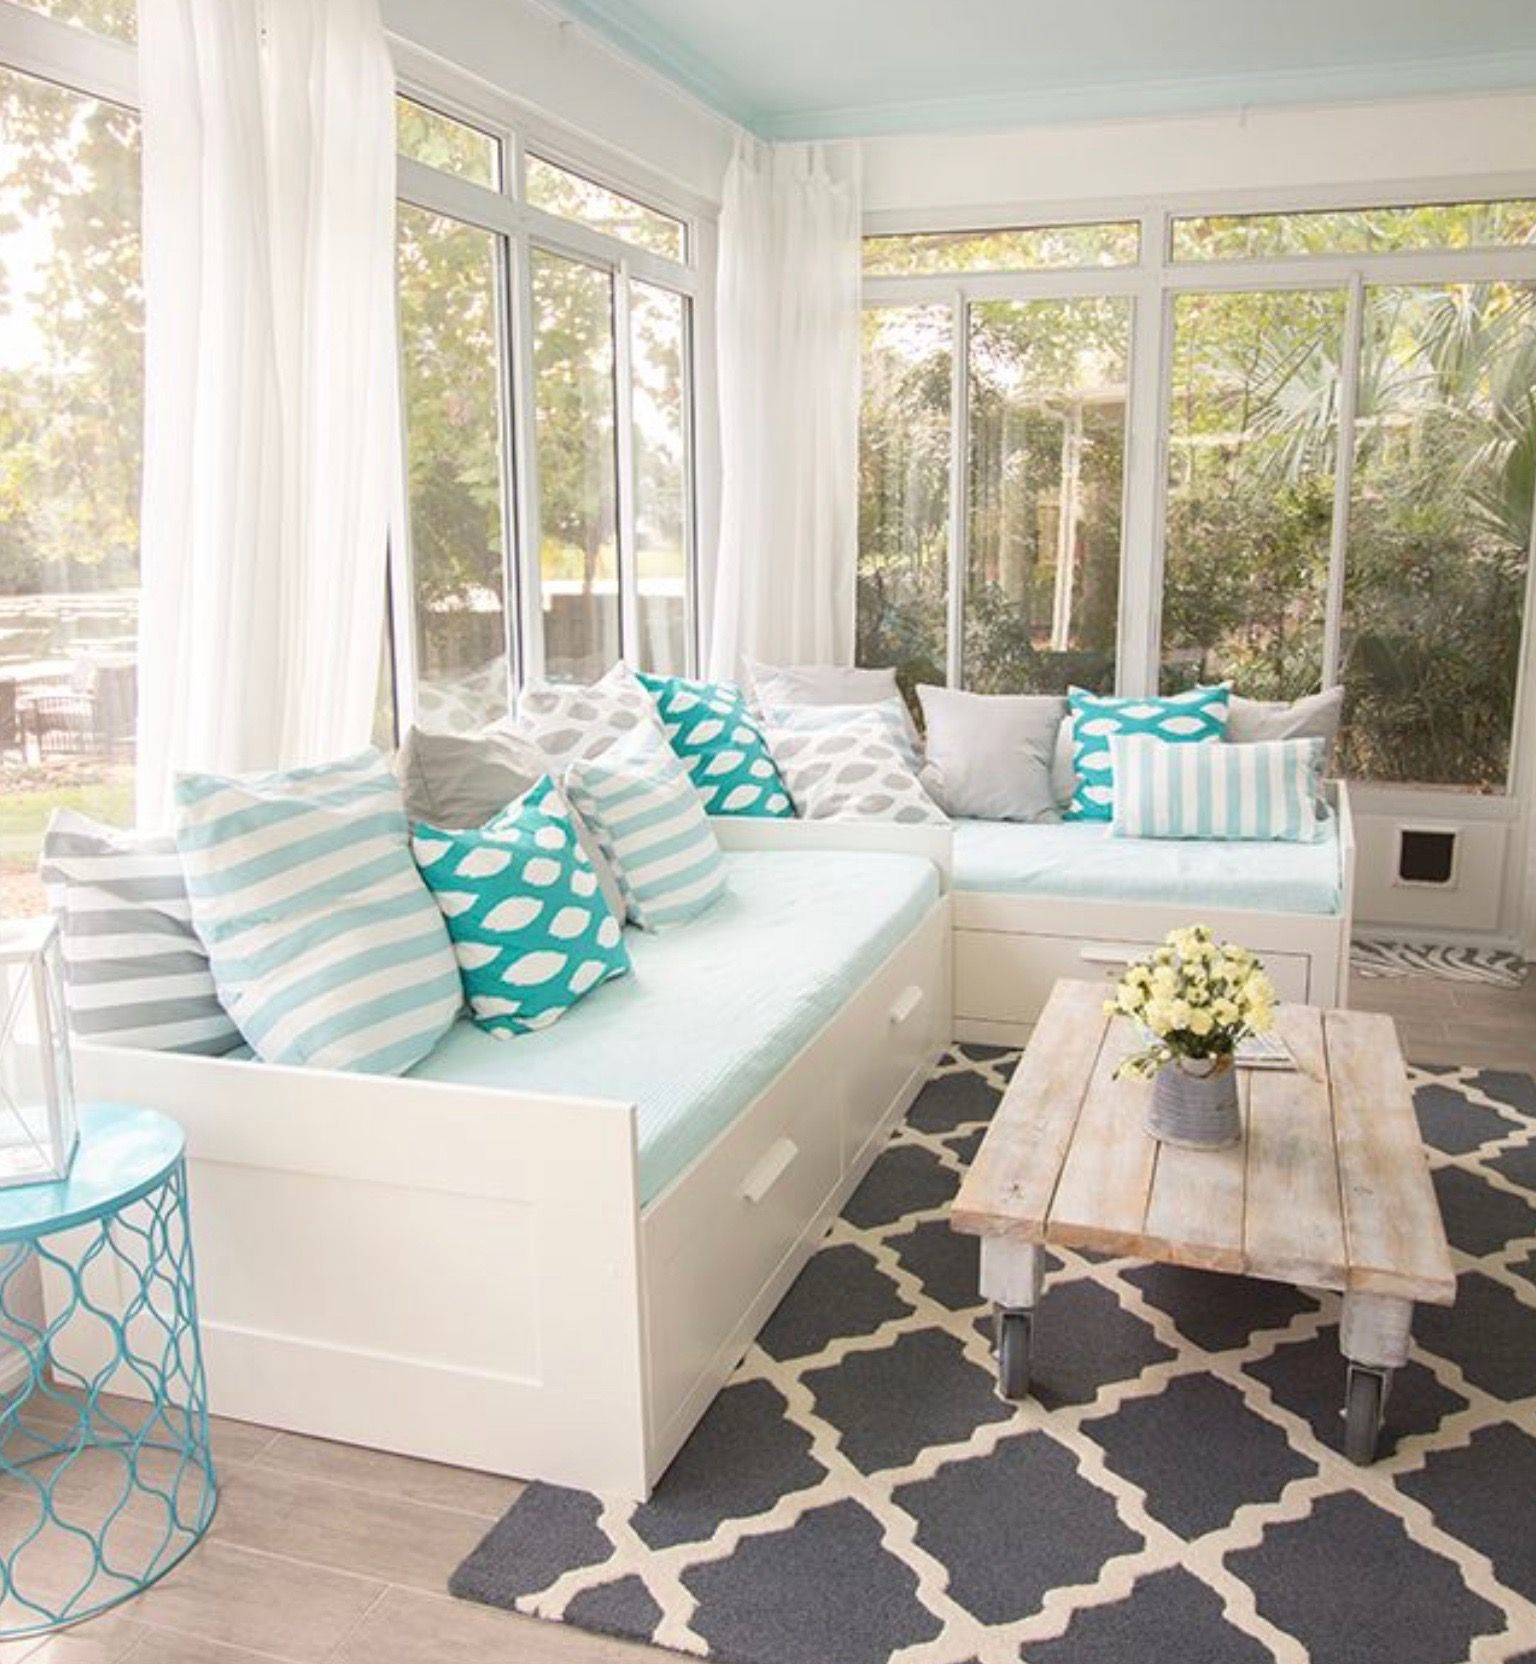 Pin by Susie (Elmore) Anderson on Cozy Office/Den (With